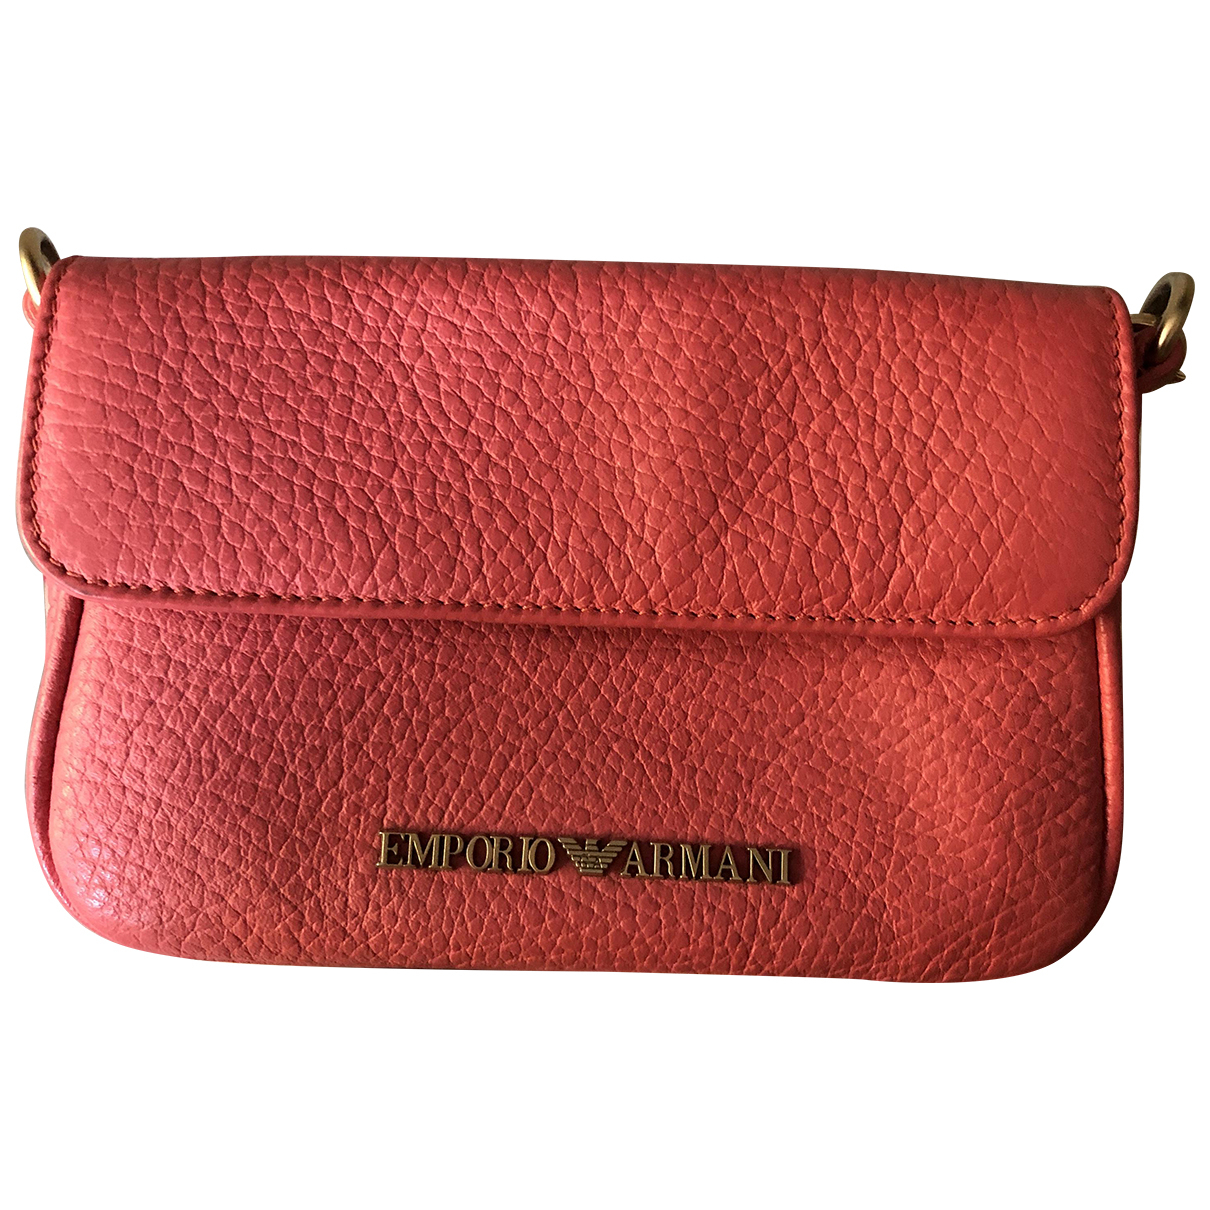 Emporio Armani N Pink Leather wallet for Women N